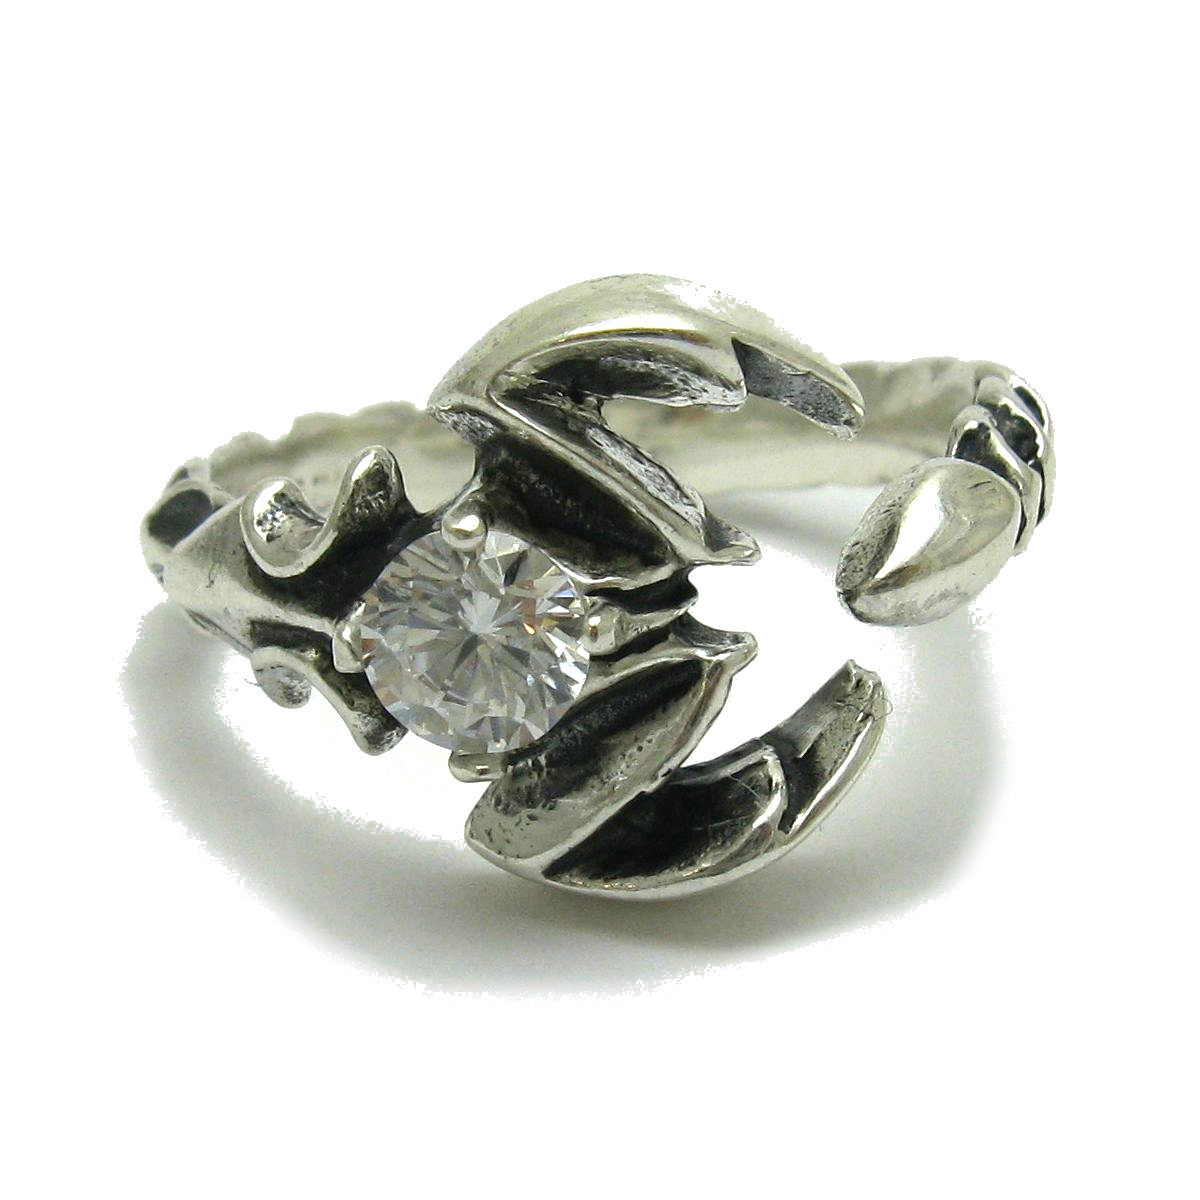 Silver ring - R001699